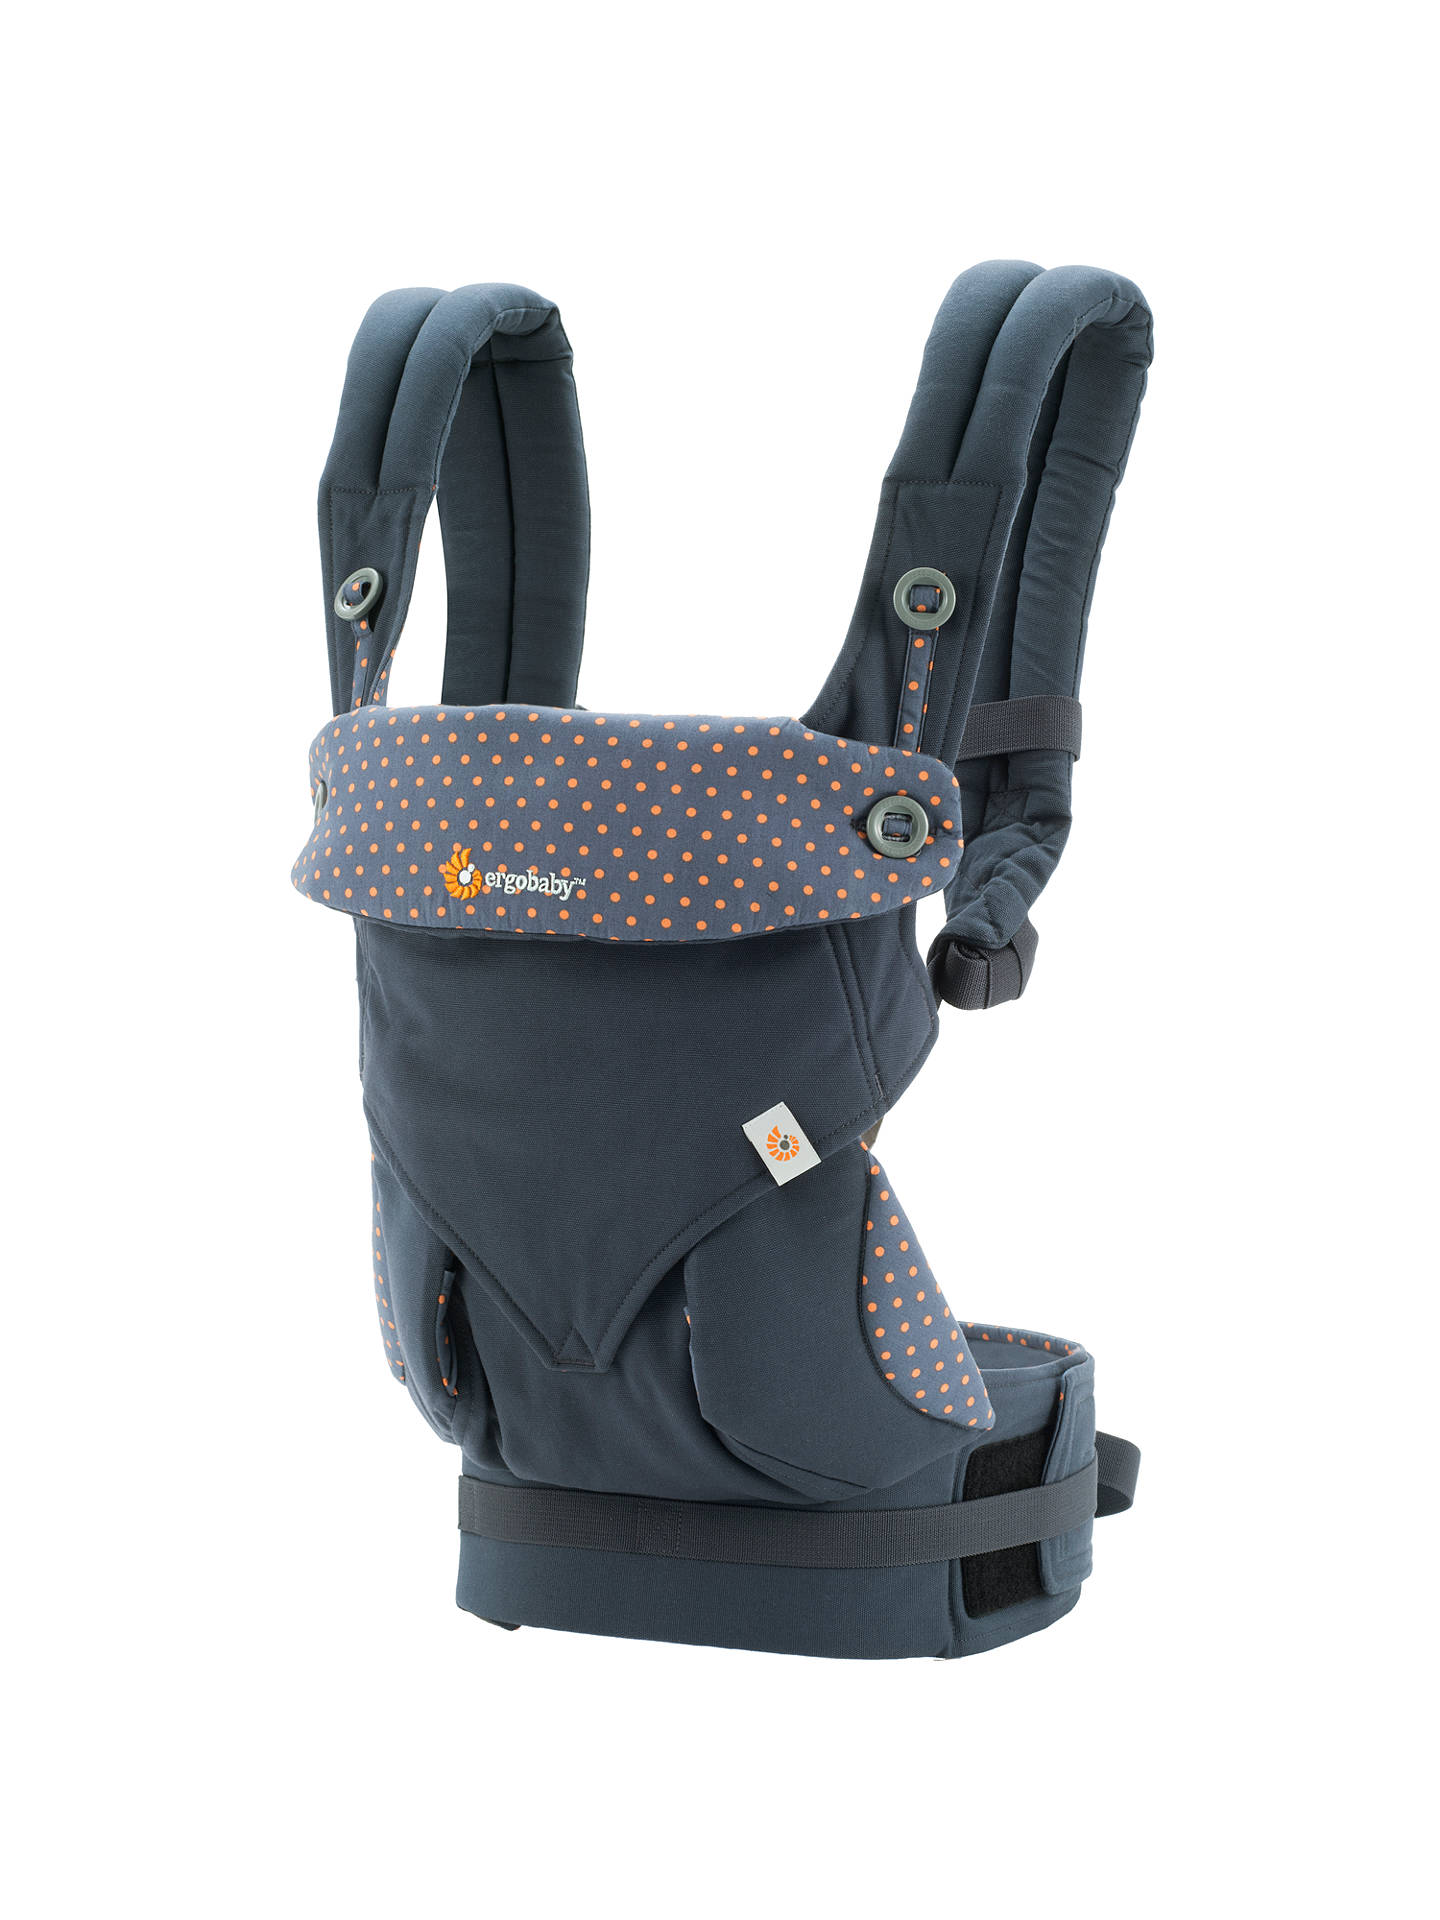 BuyErgobaby Four Position 360 Baby Carrier, Dusty Blue Online at johnlewis.com